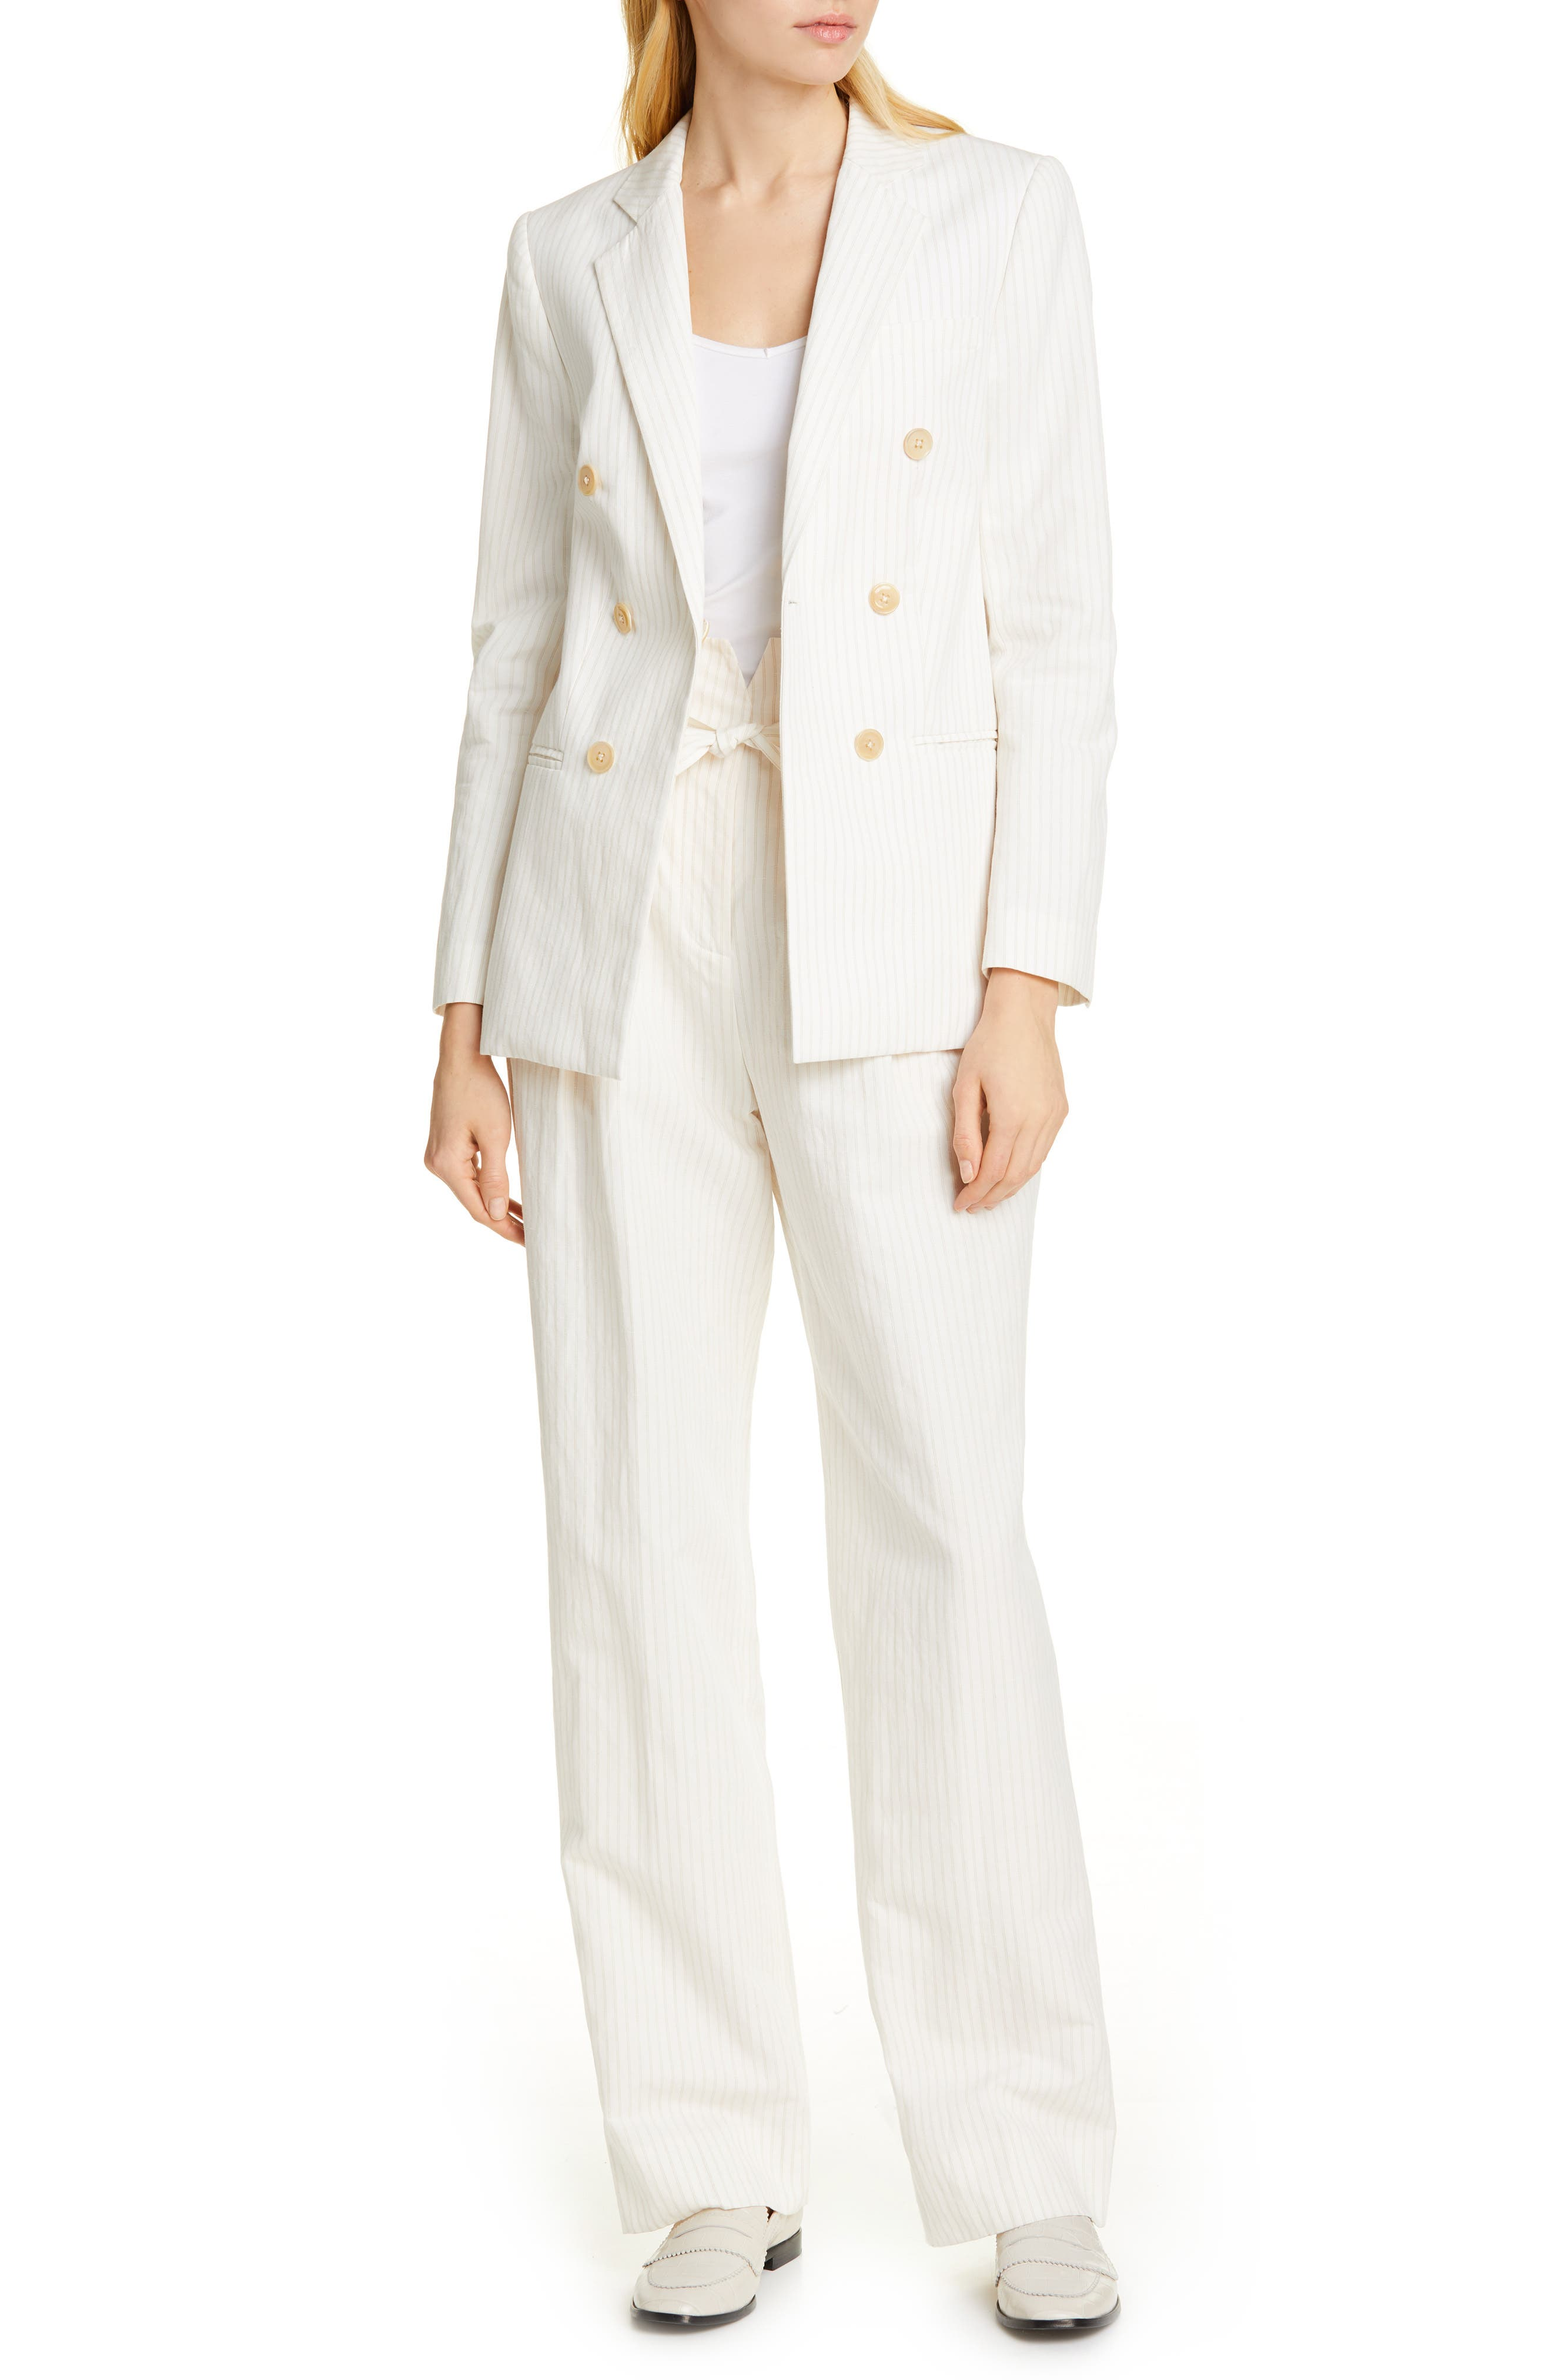 REBECCA TAYLOR, Pinstripe Belted Wide Leg Pants, Alternate thumbnail 8, color, SNOW COMBO